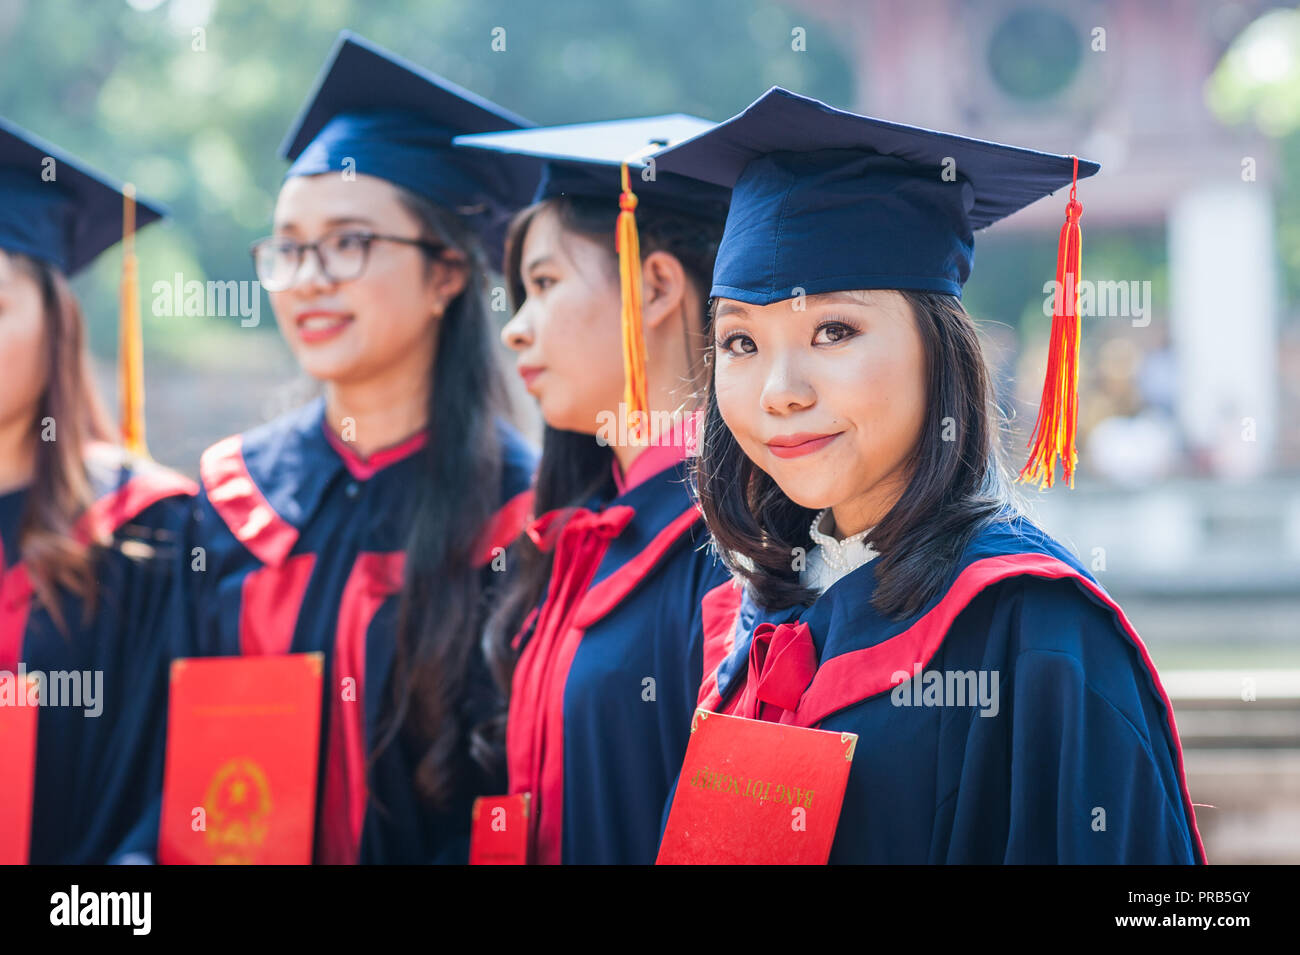 Hanoi, Vietnam - October 16, 2016. Group of students dressed in caps and gowns celebrating their university graduation. Temple of Literature. - Stock Image